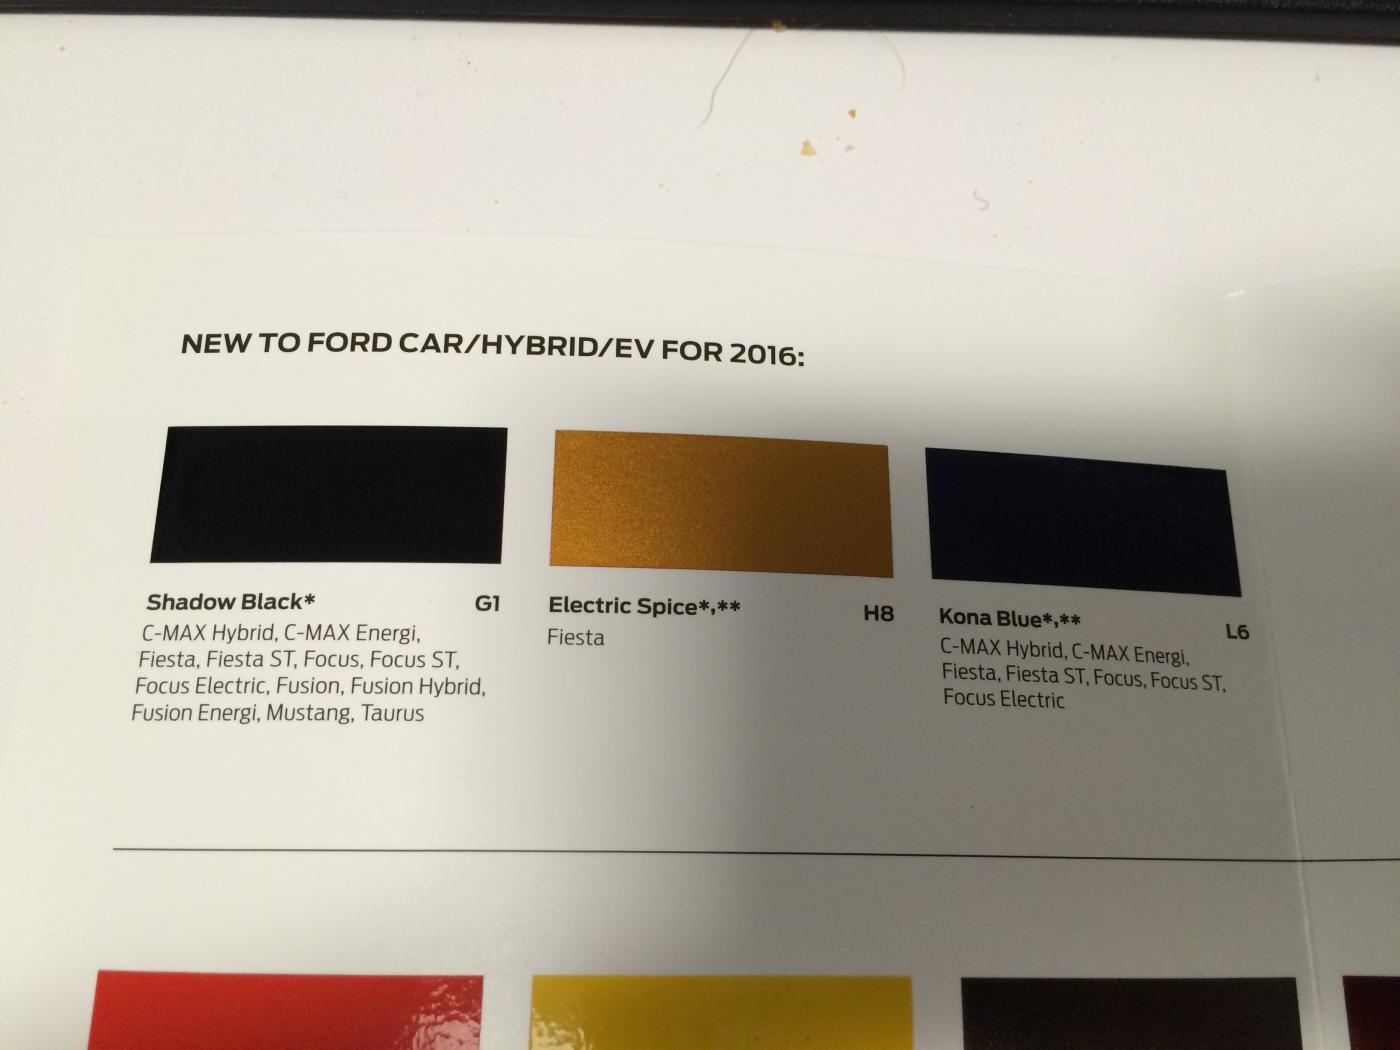 Auto Paint Colors >> UPDATE: 2016 Mustang Confirmed to Debut California Special Pack, Debuts on May 11th - autoevolution